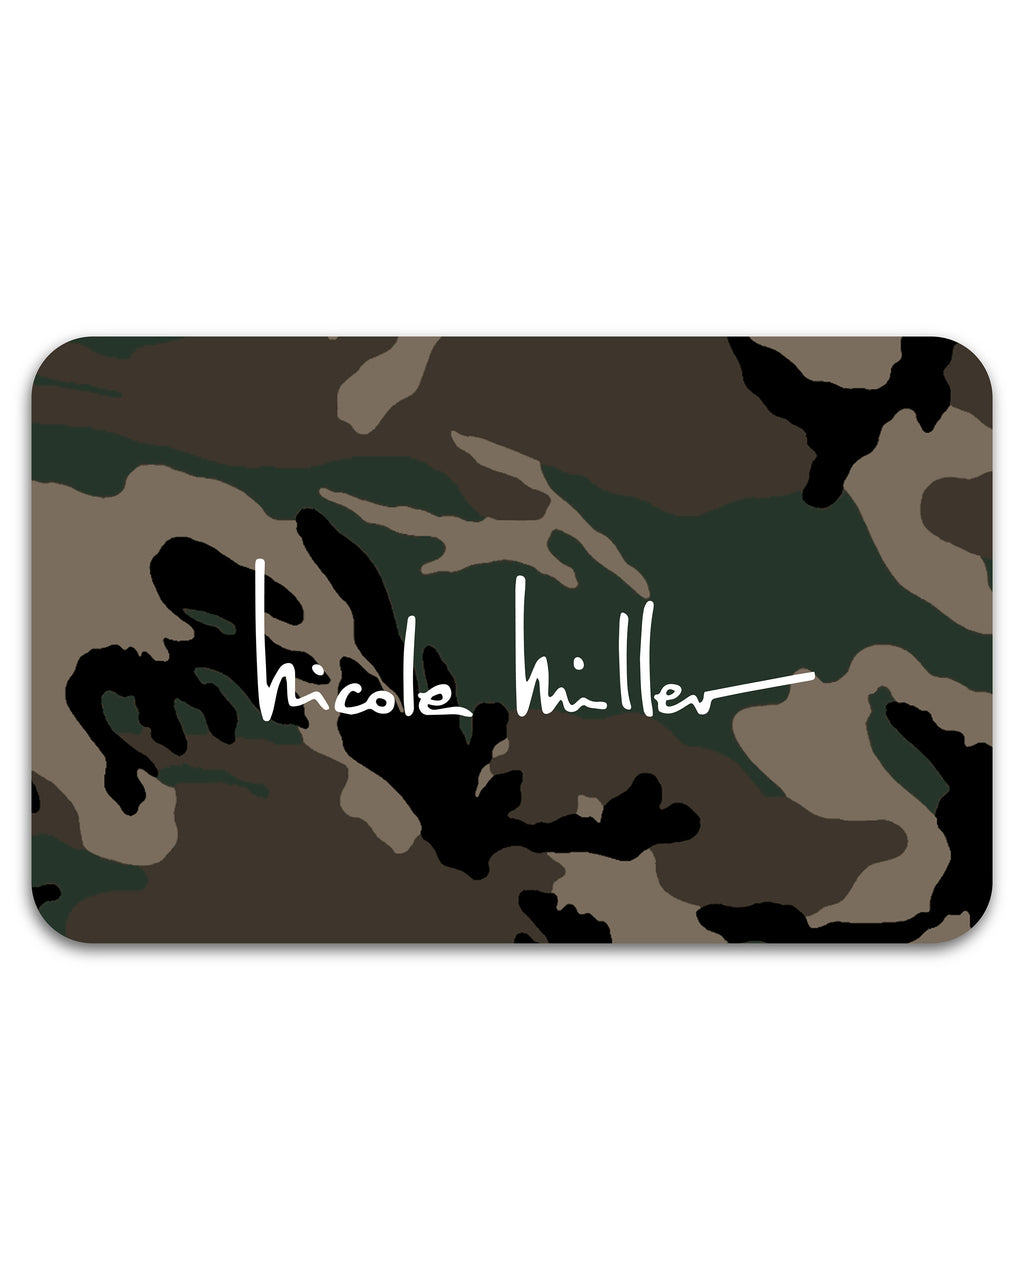 GC500 - $500 Nicole Miller e-Gift Card - accessories - gift cards - $500 Nicole Miller e-Gift Card